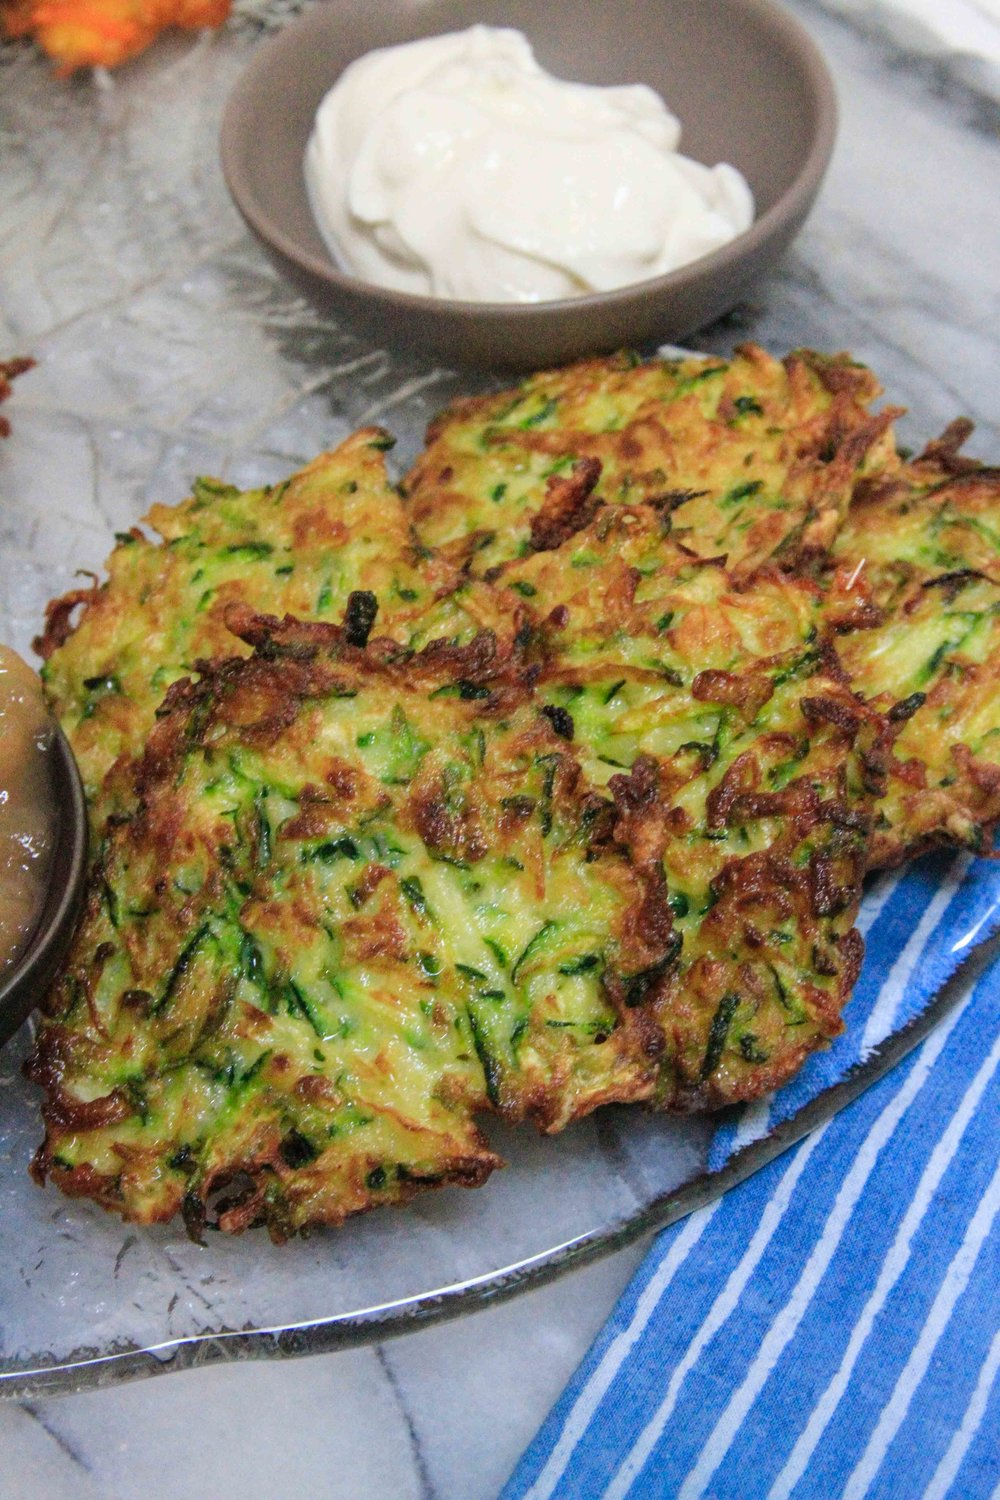 Make your own latke party - zuchini pancakes